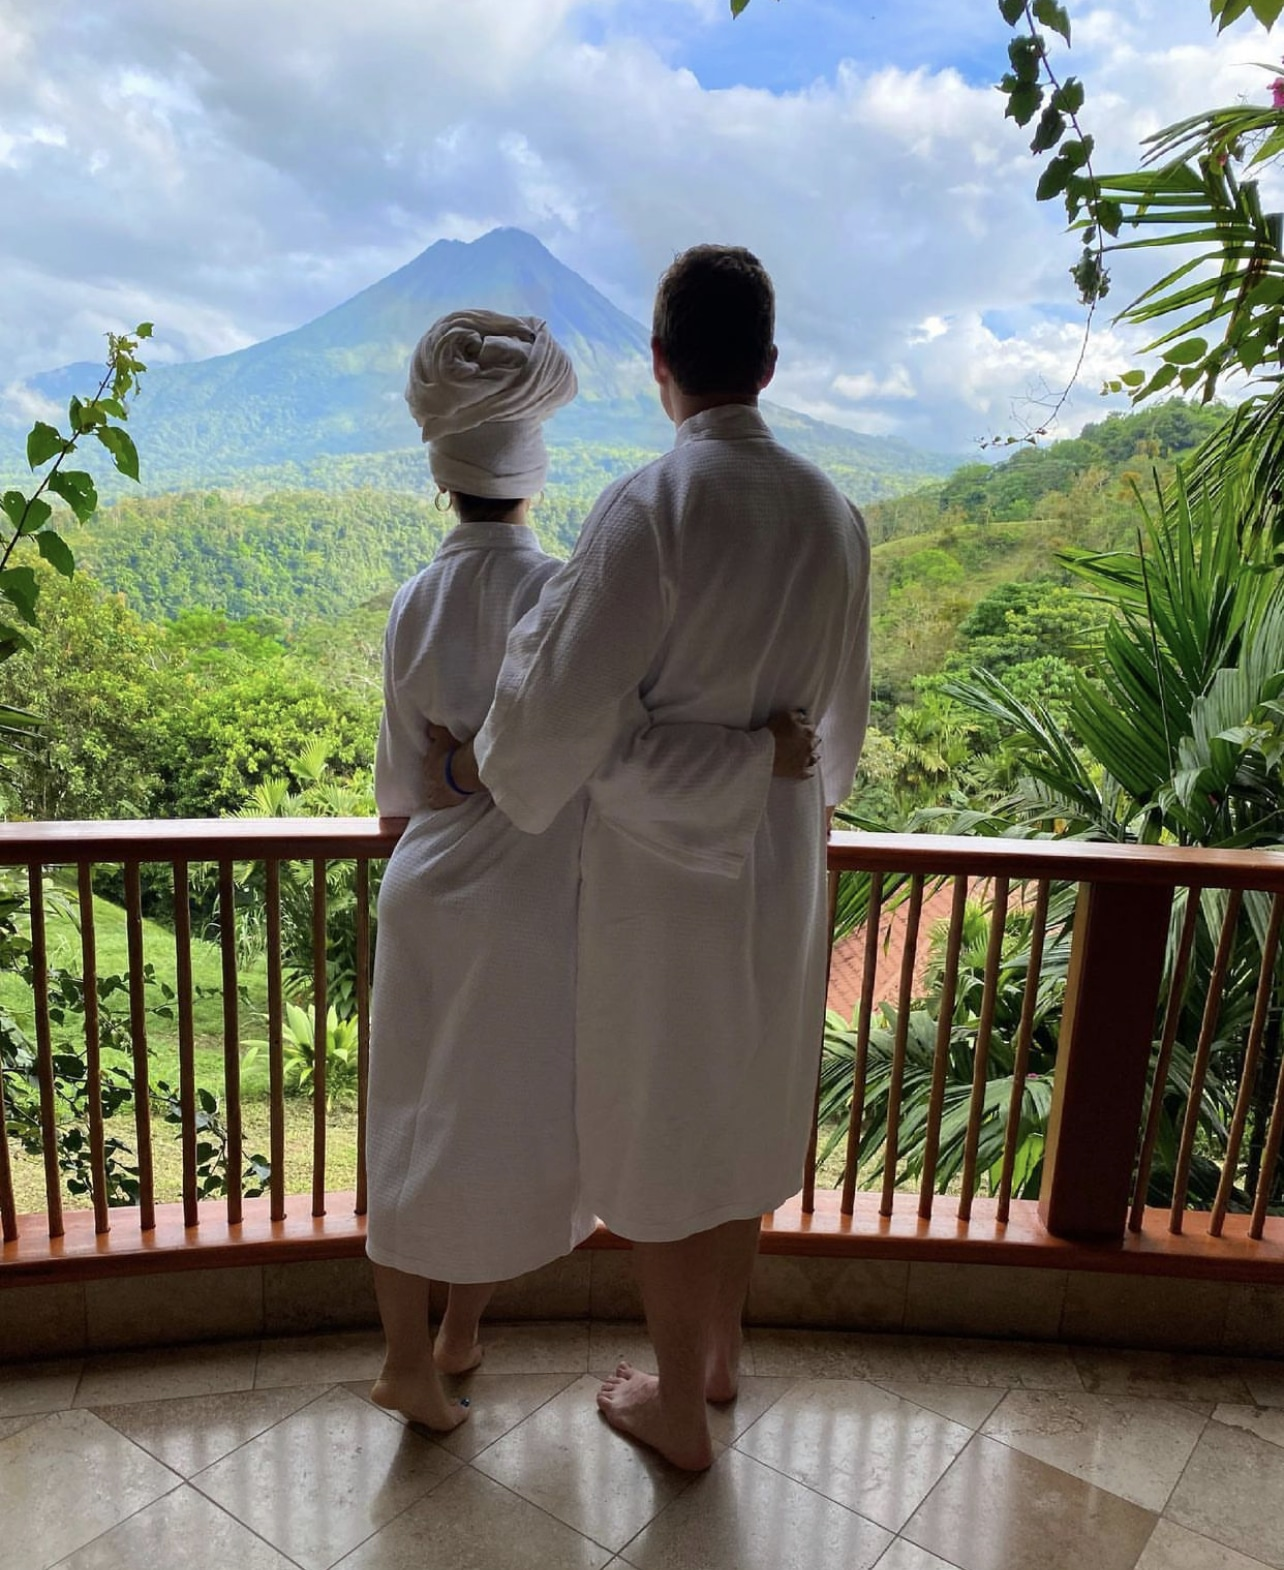 bride and groom to be wearing matching robes and looking out over the tropical location